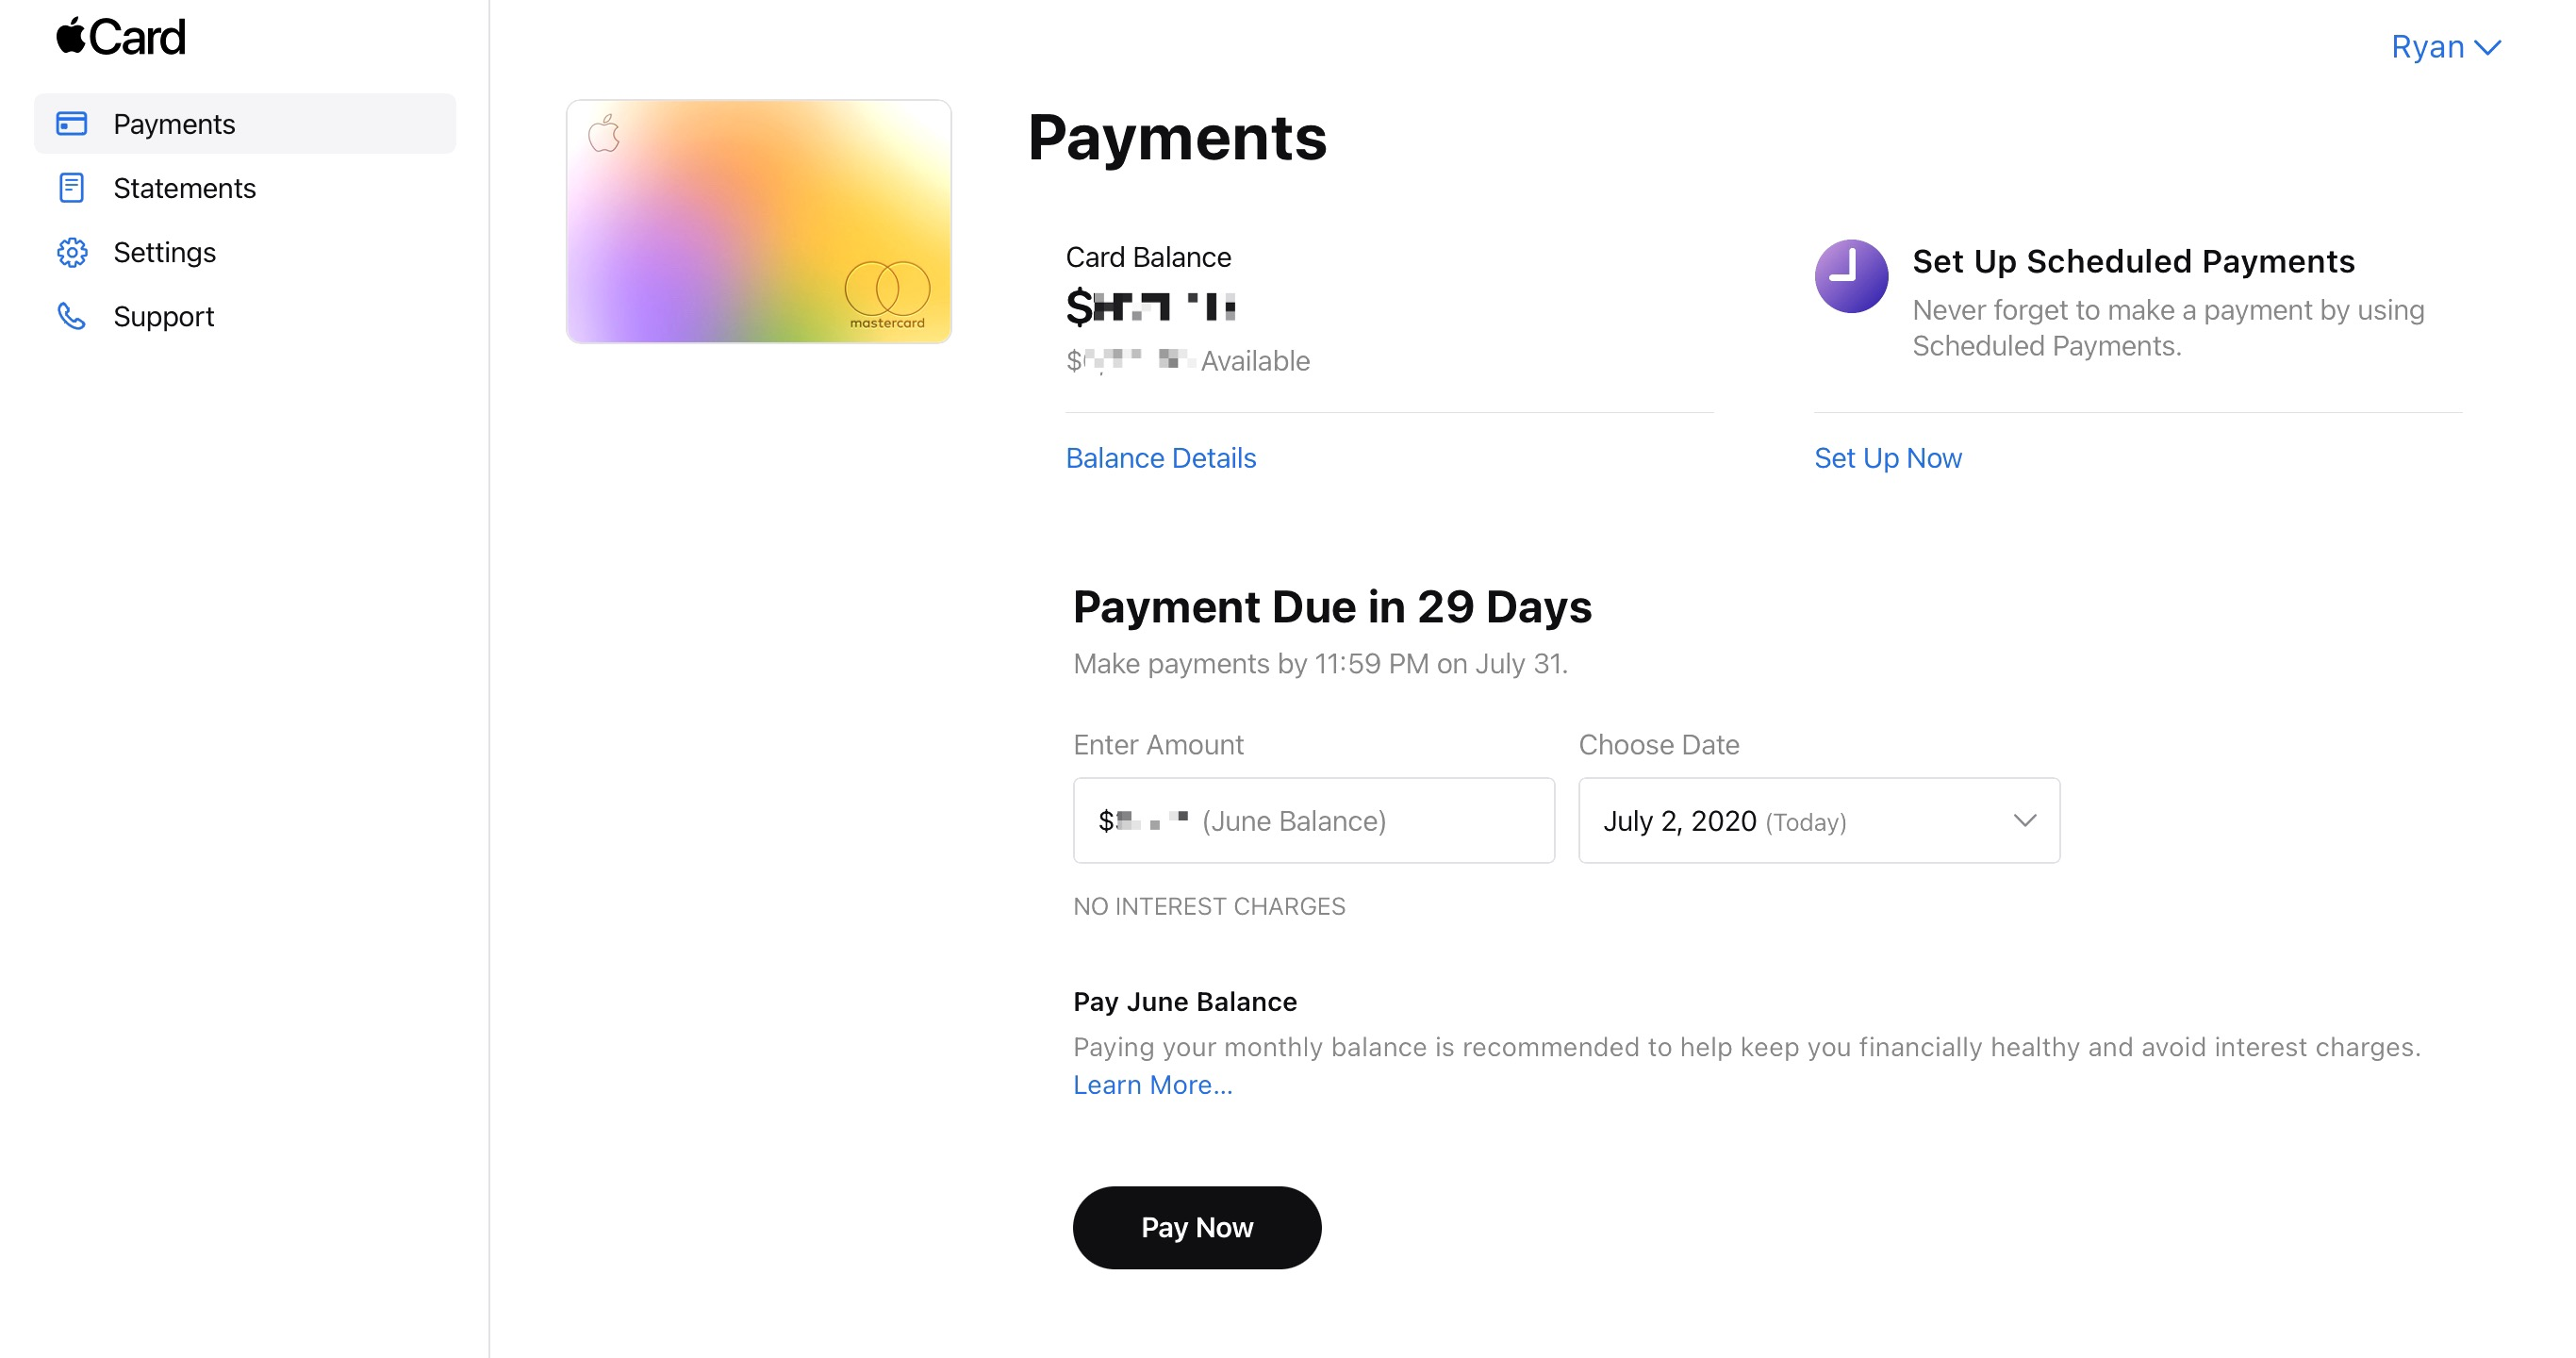 Apple Card owners can now make payment on their computer, too